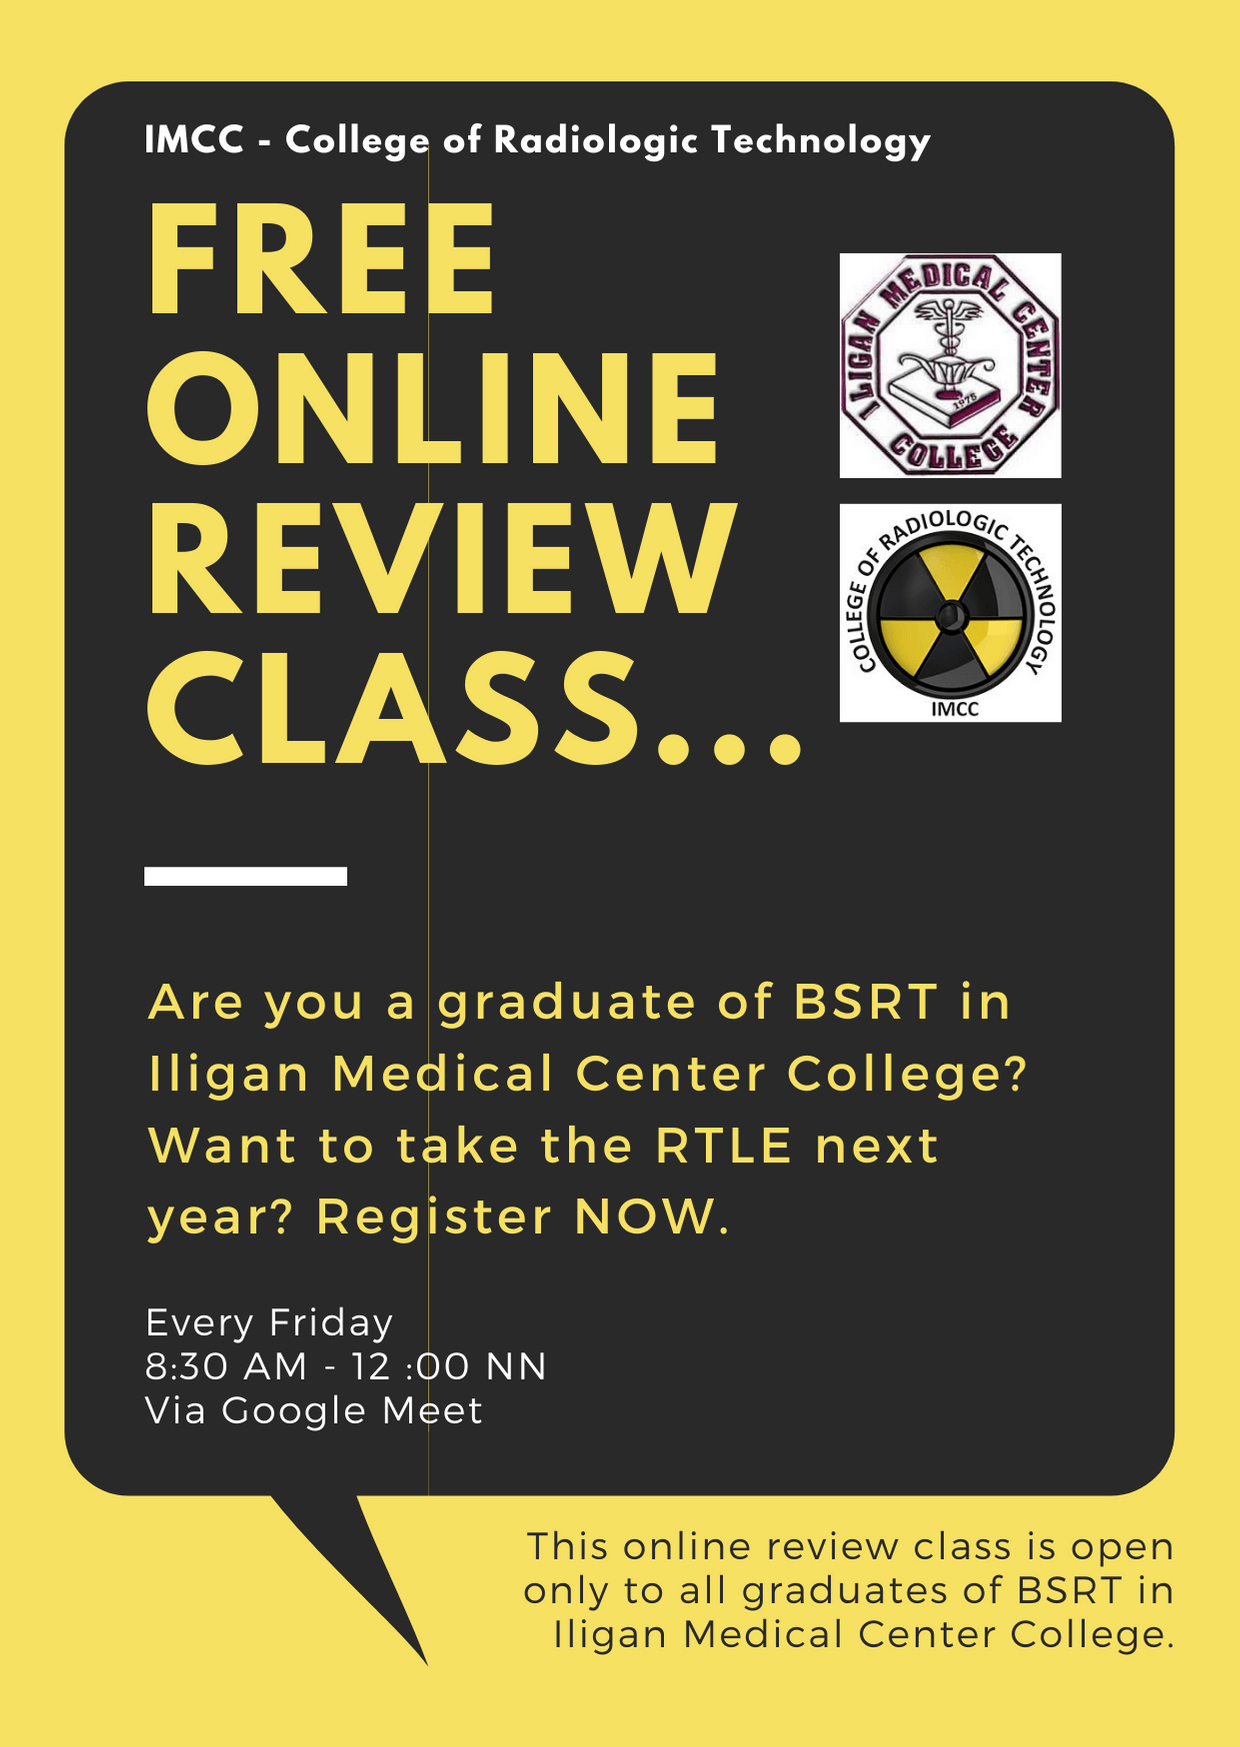 college of radiologic technology online review class